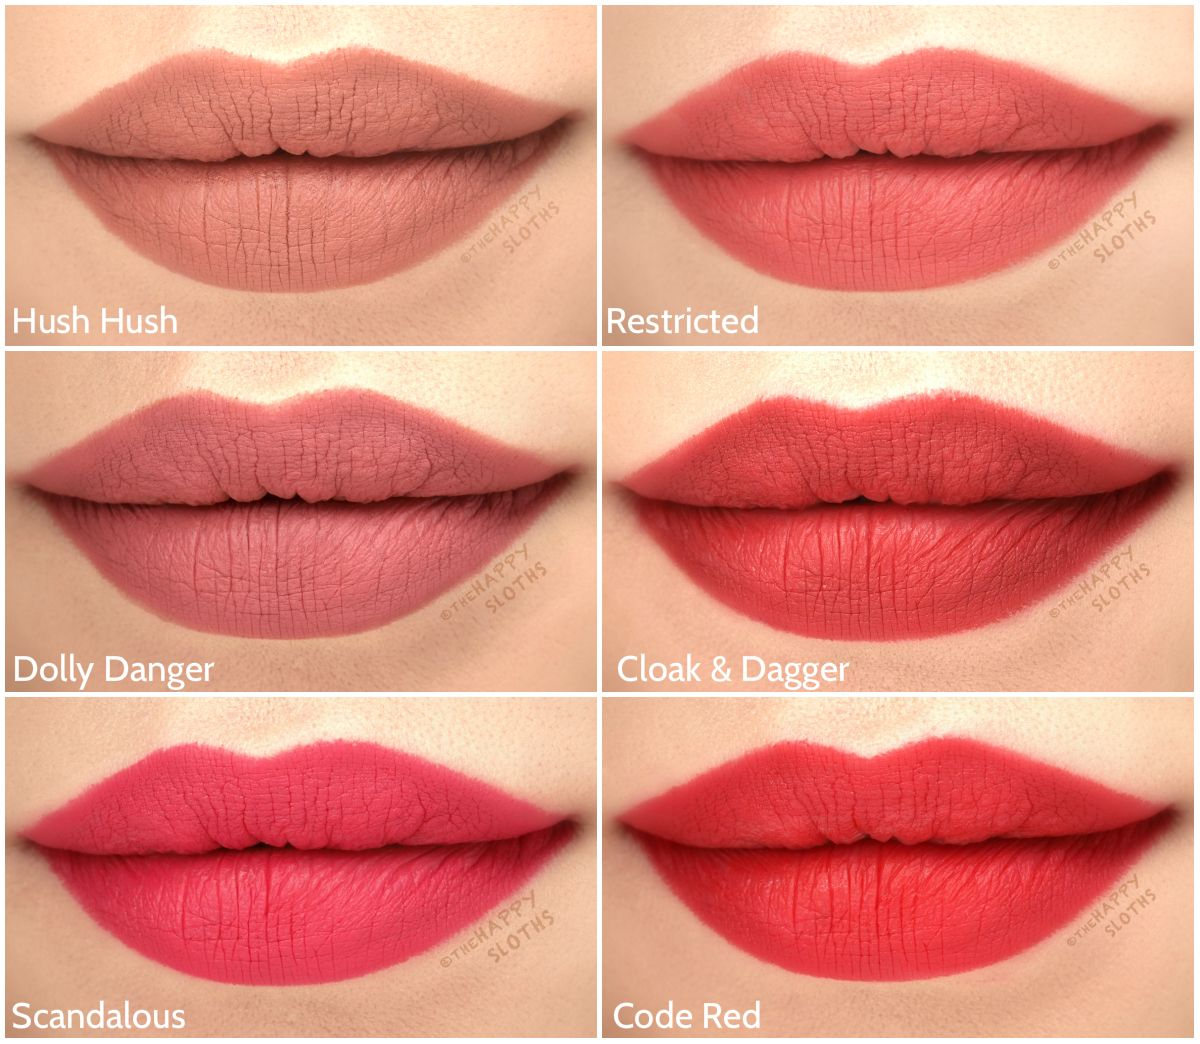 How to Stop Your Lipstick from Bleeding into Lip Wrinkles